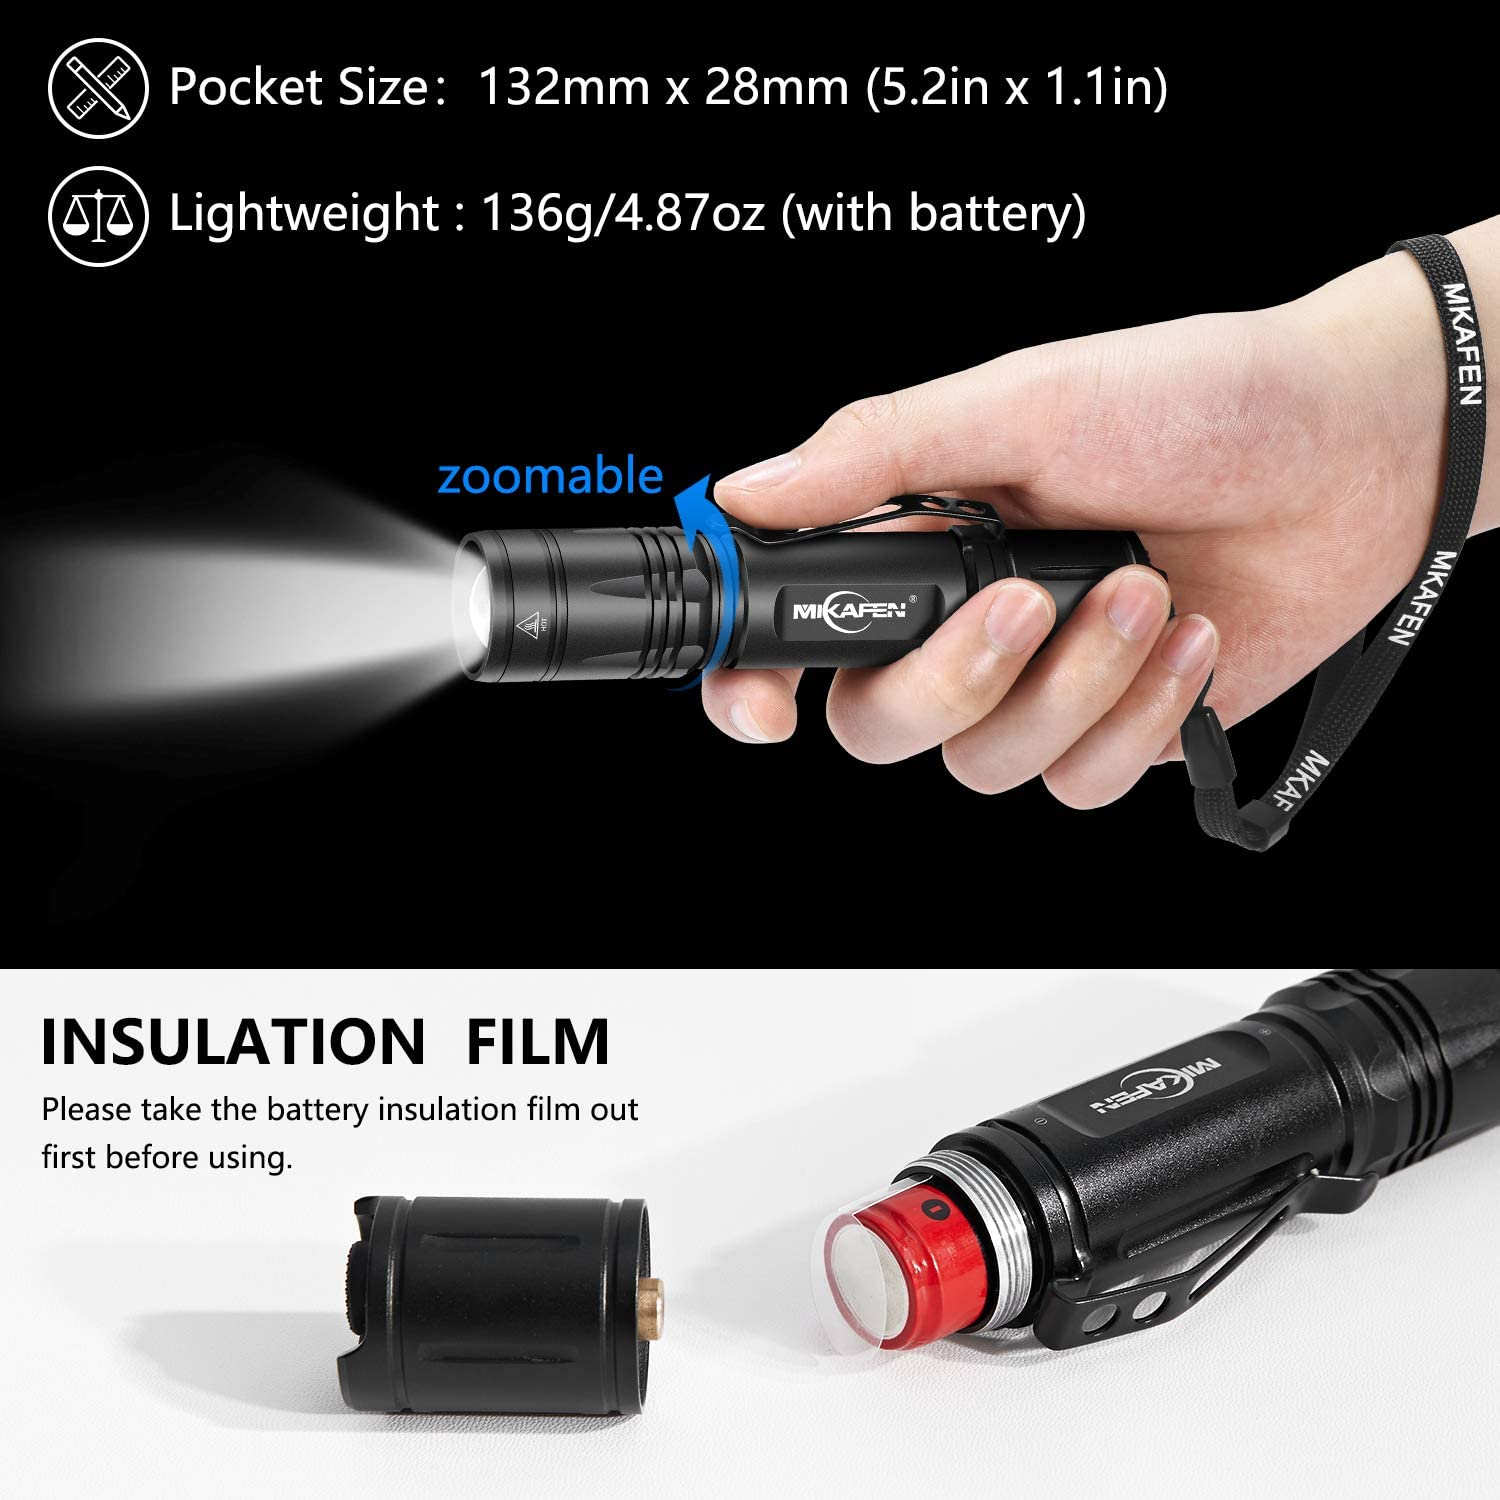 IP7 Waterproof,3 Modes,Zoomable,High Lumen Tactical Flashlight 18650 Battery Include MIKAFEN Rechargeable LED Flashlight 1200 Lumens